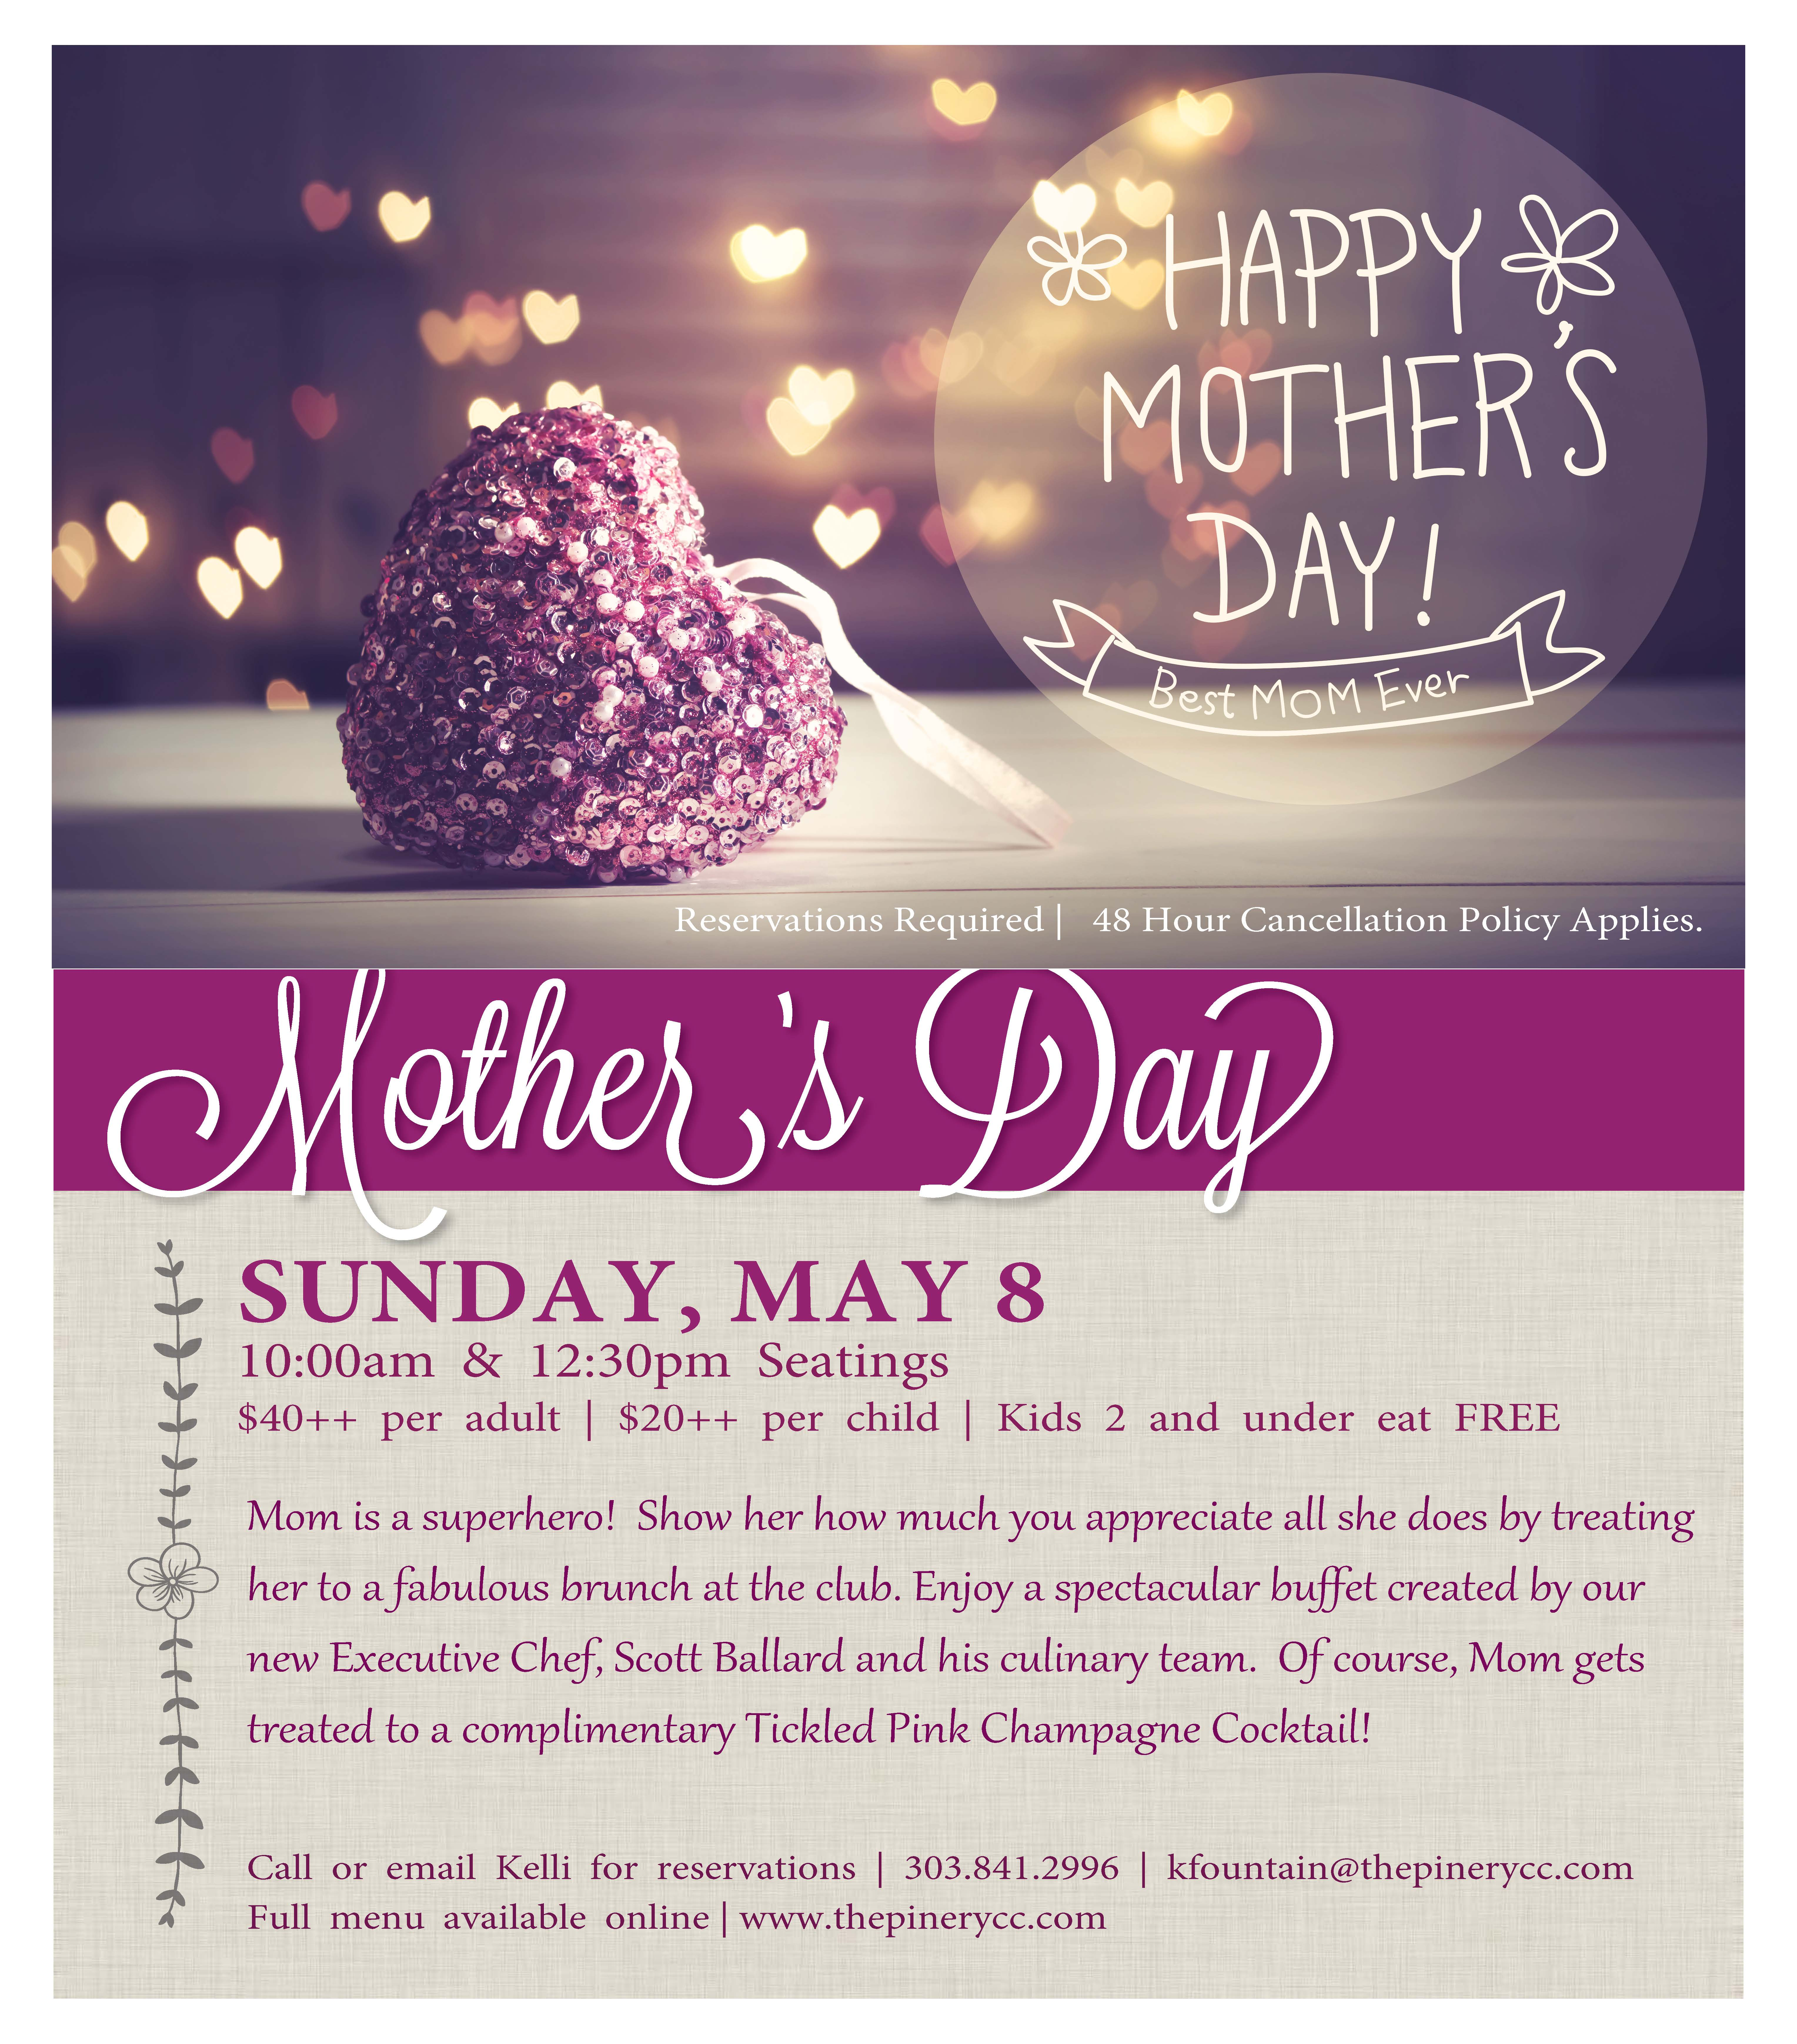 Mothers Day Flyer: The Pinery Country Club